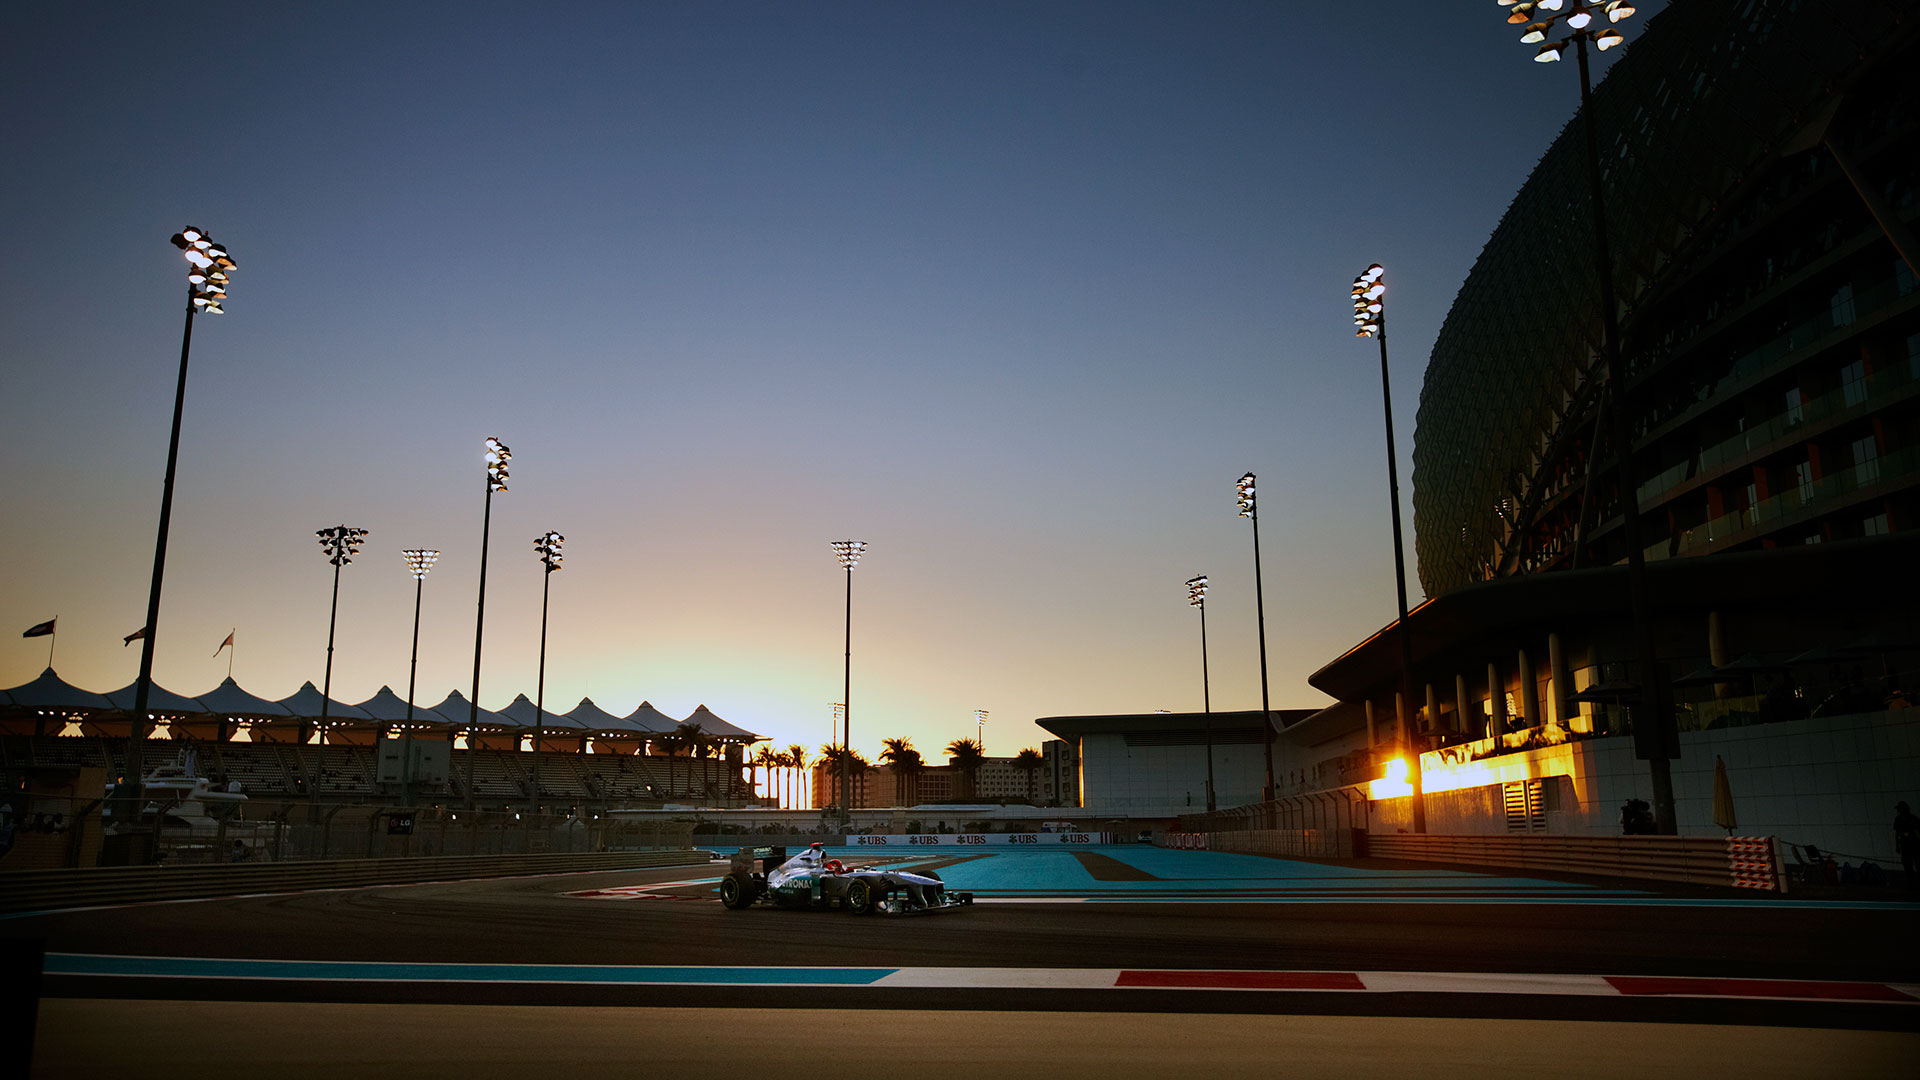 Hd wallpapers 2011 formula 1 grand prix of abu dhabi f1 for Home wallpaper uae